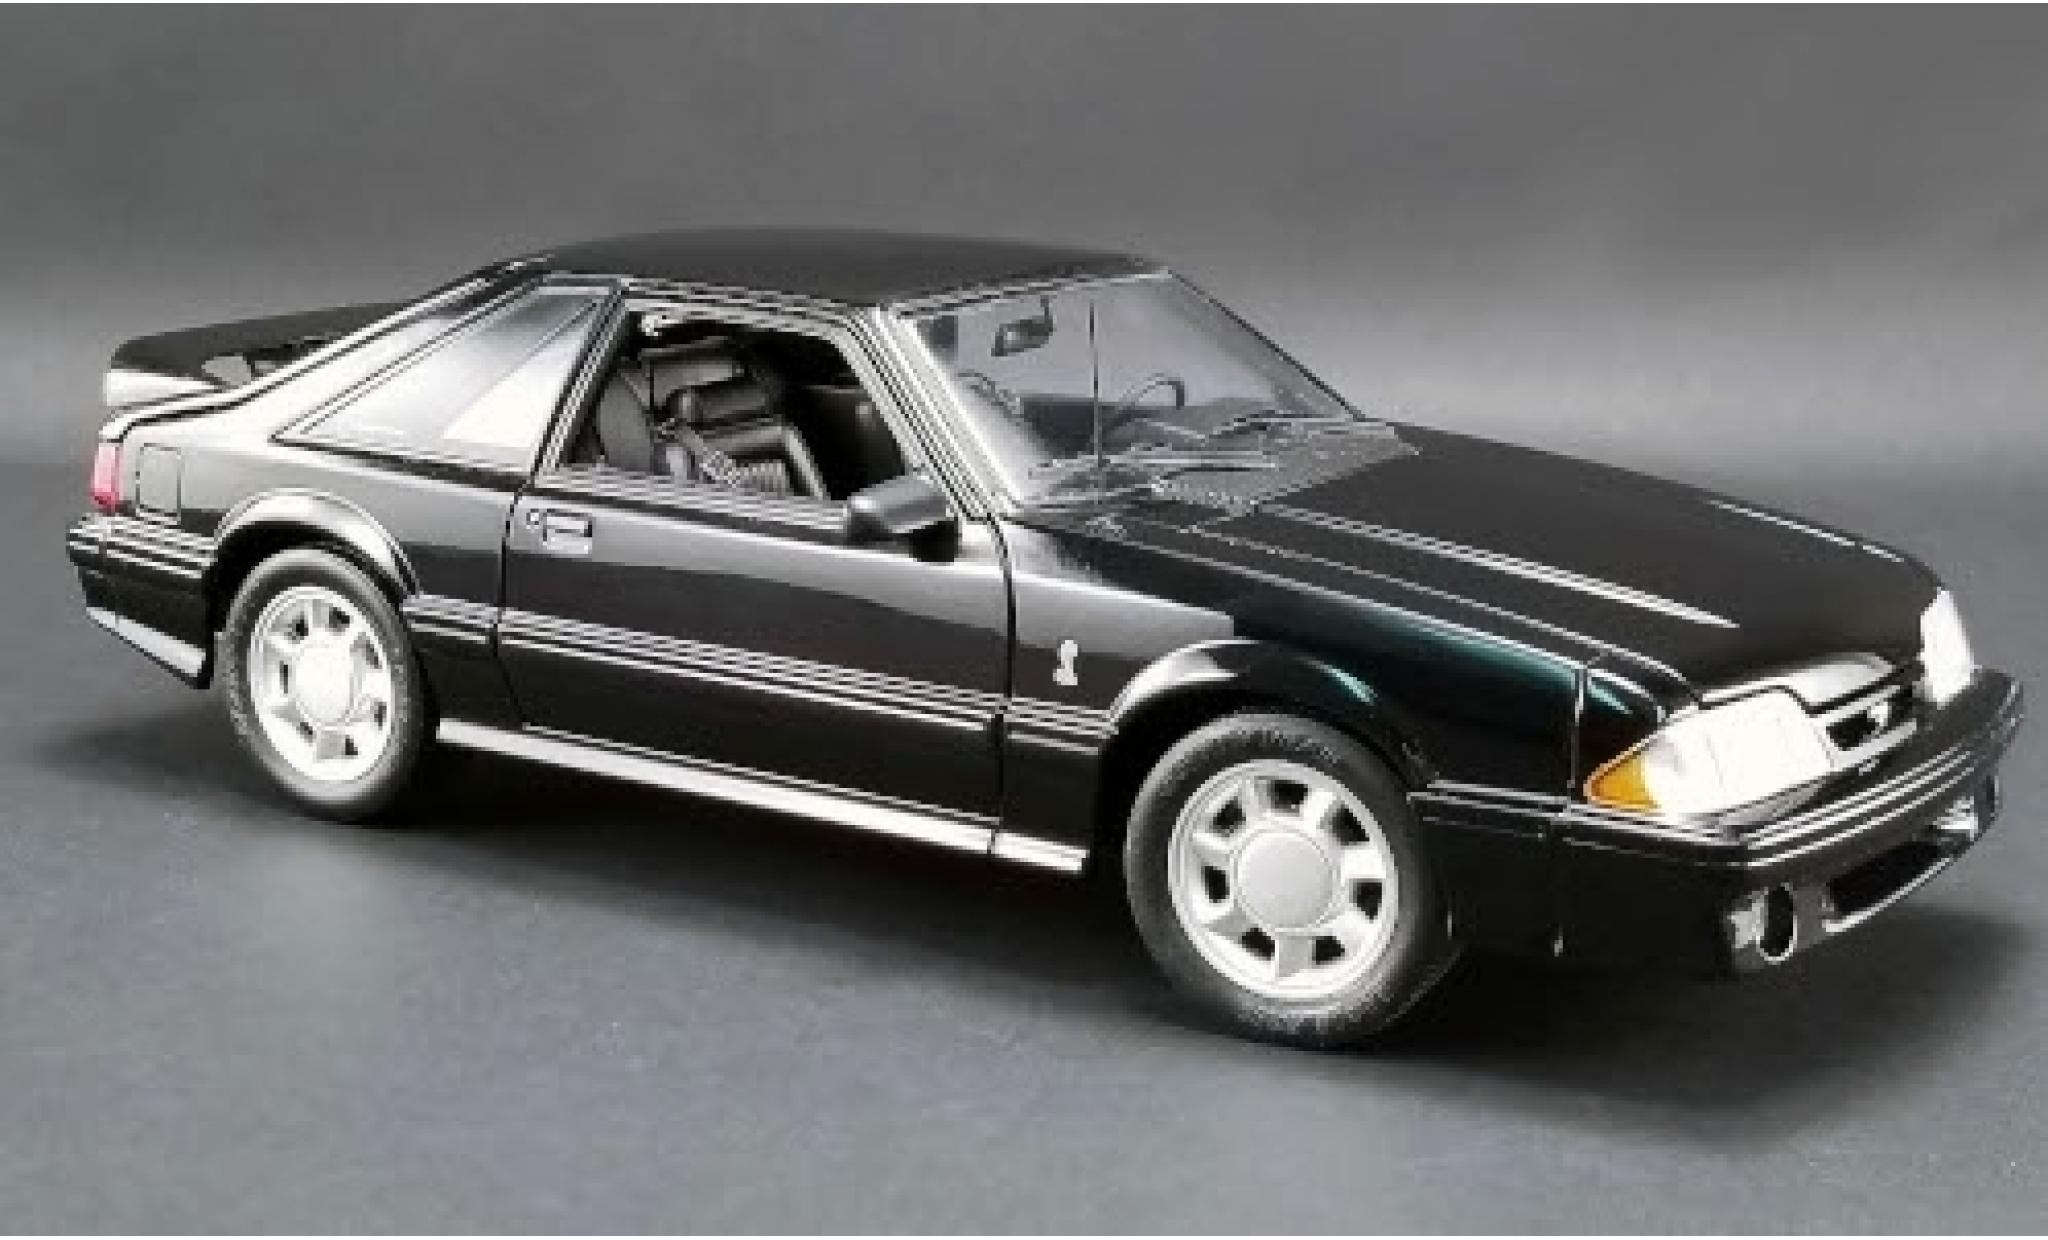 Ford Mustang 1/18 GMP Cobra noire 1993